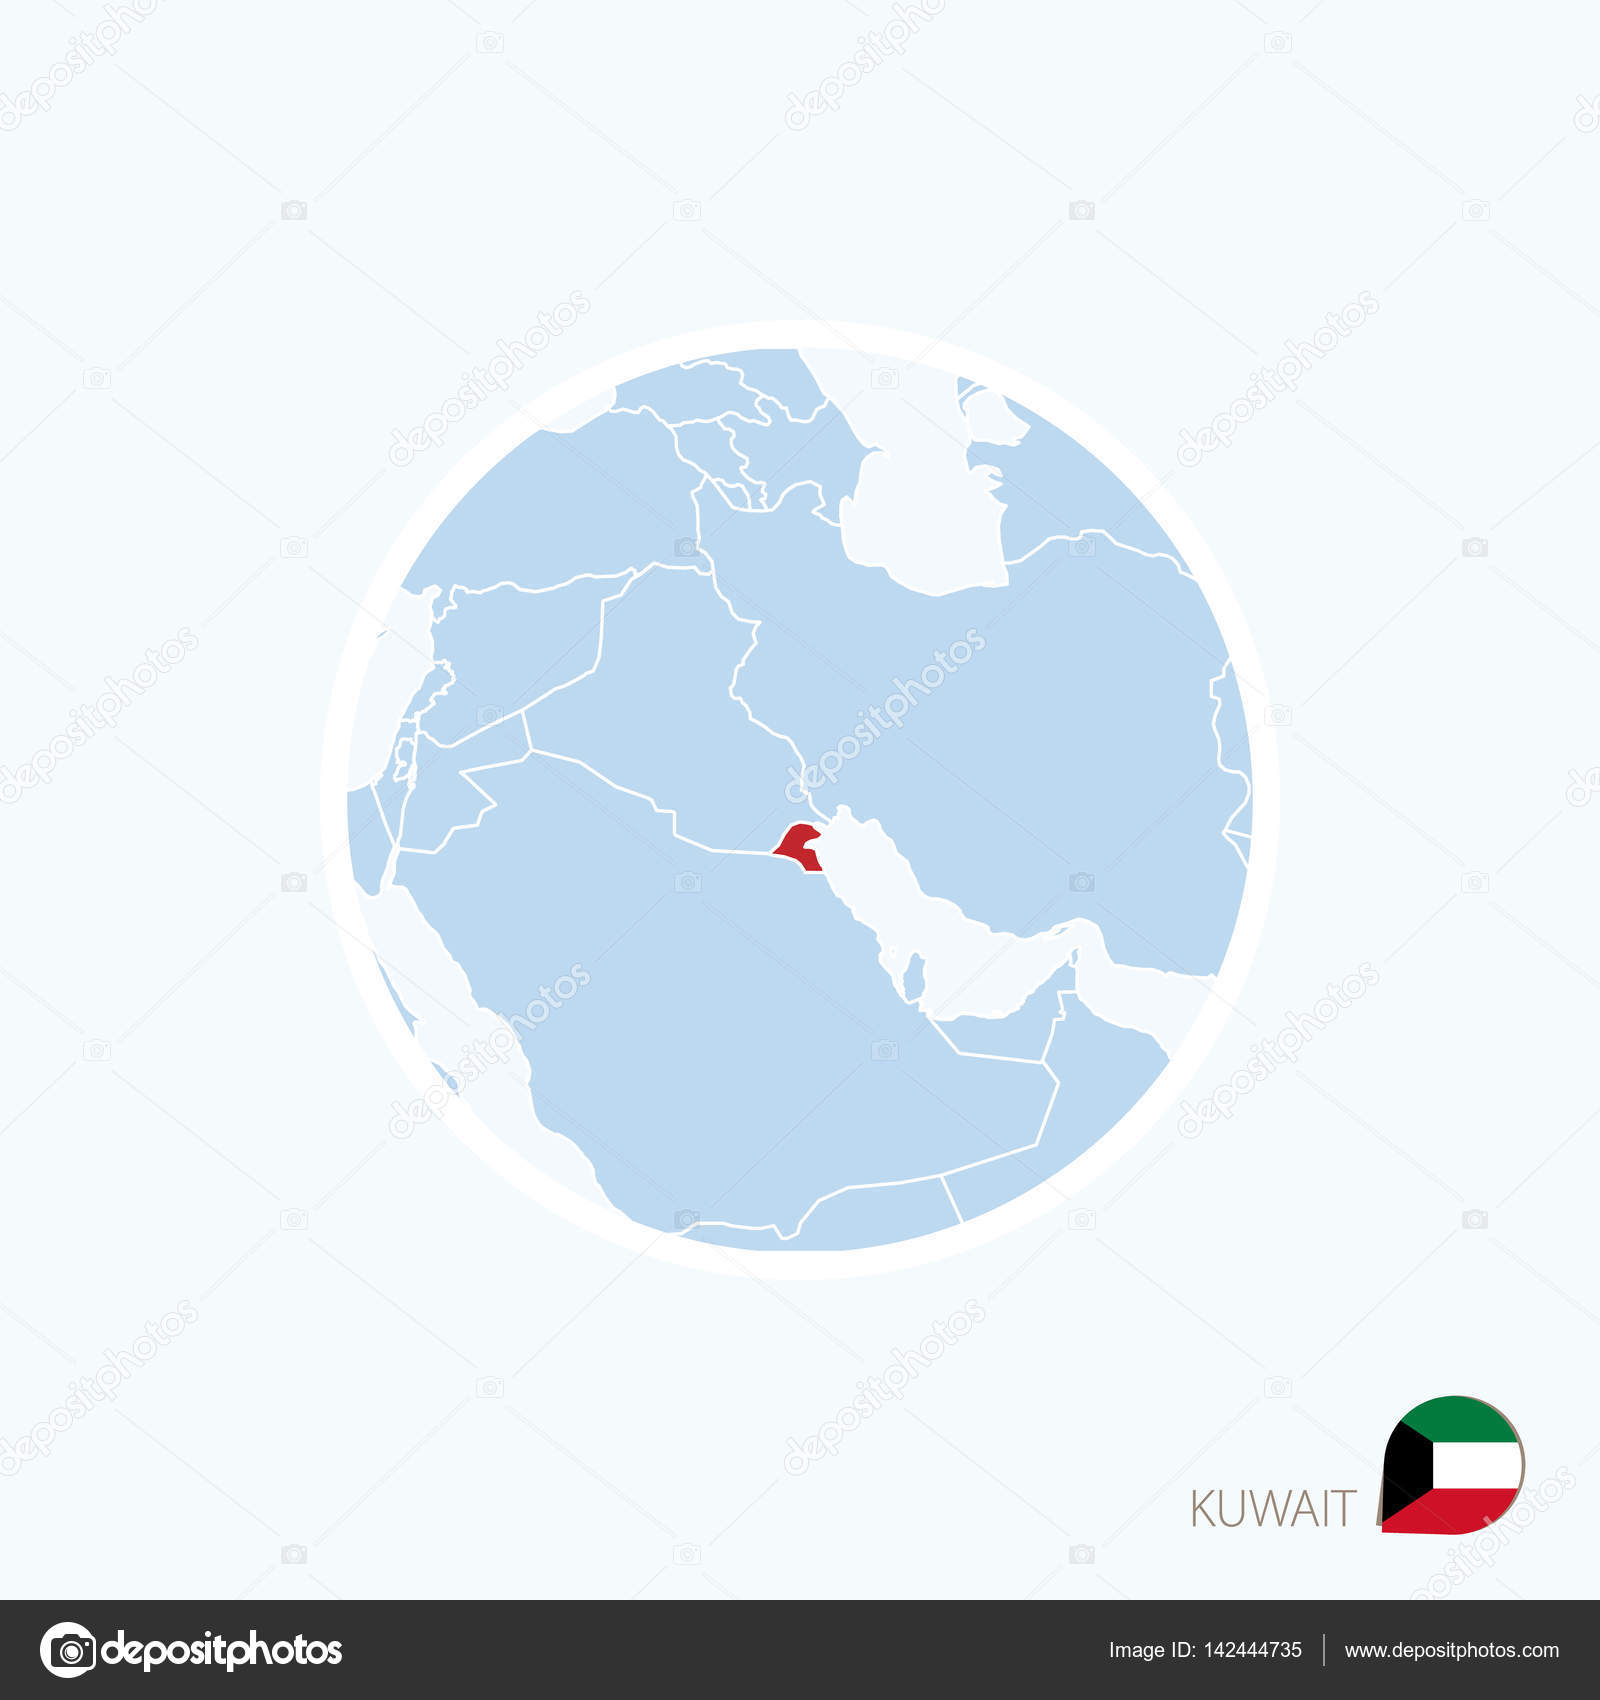 Map icon of kuwait blue map of middle east with highlighted kuwait map icon of kuwait blue map of middle east with highlighted kuwait stock vector gumiabroncs Gallery